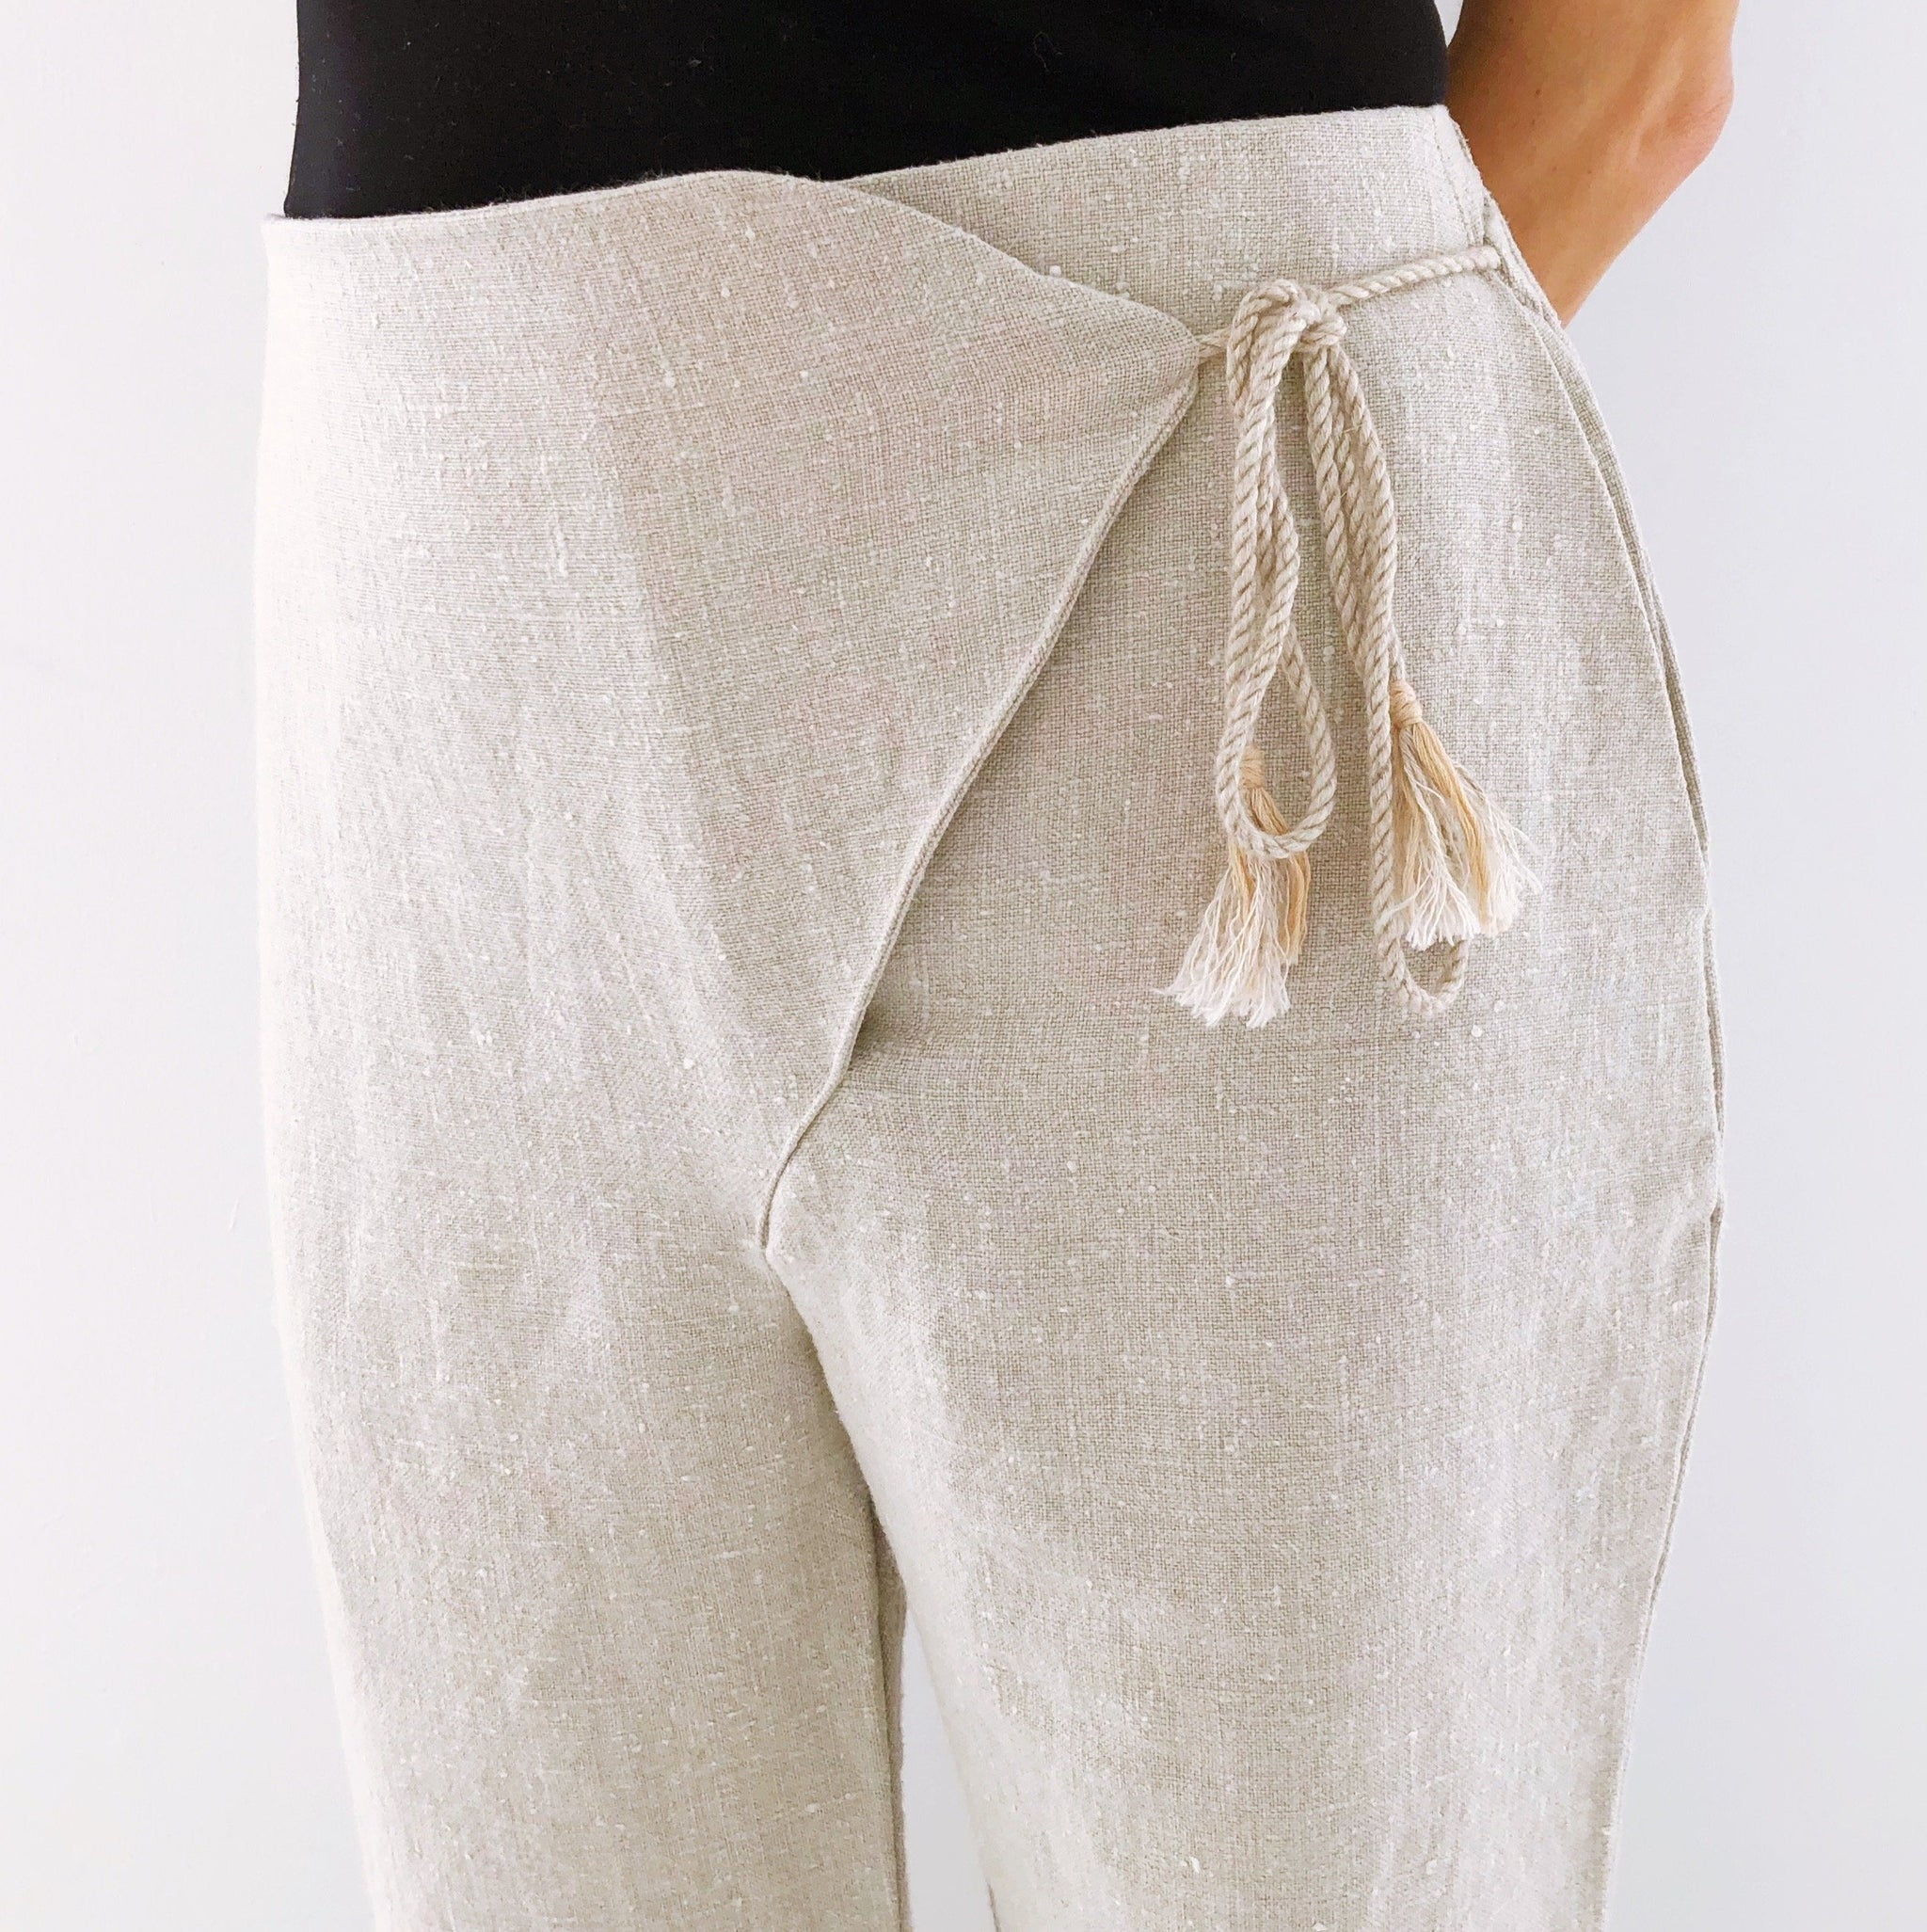 The Prashanti Meditation Pants